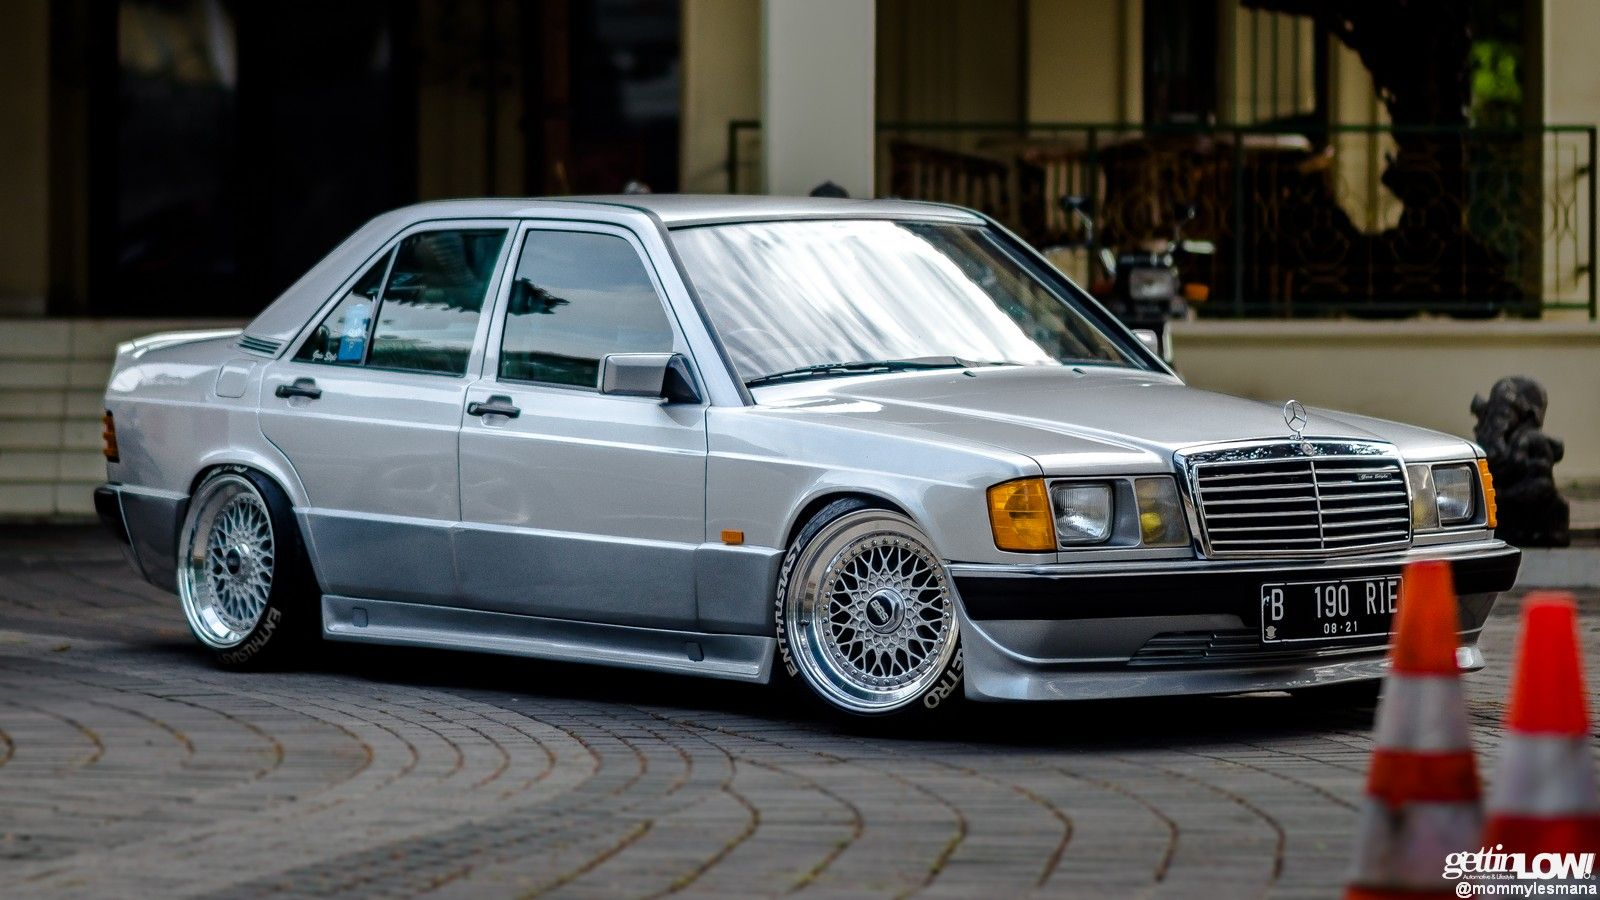 indragoin's Mercedes-Benz W201